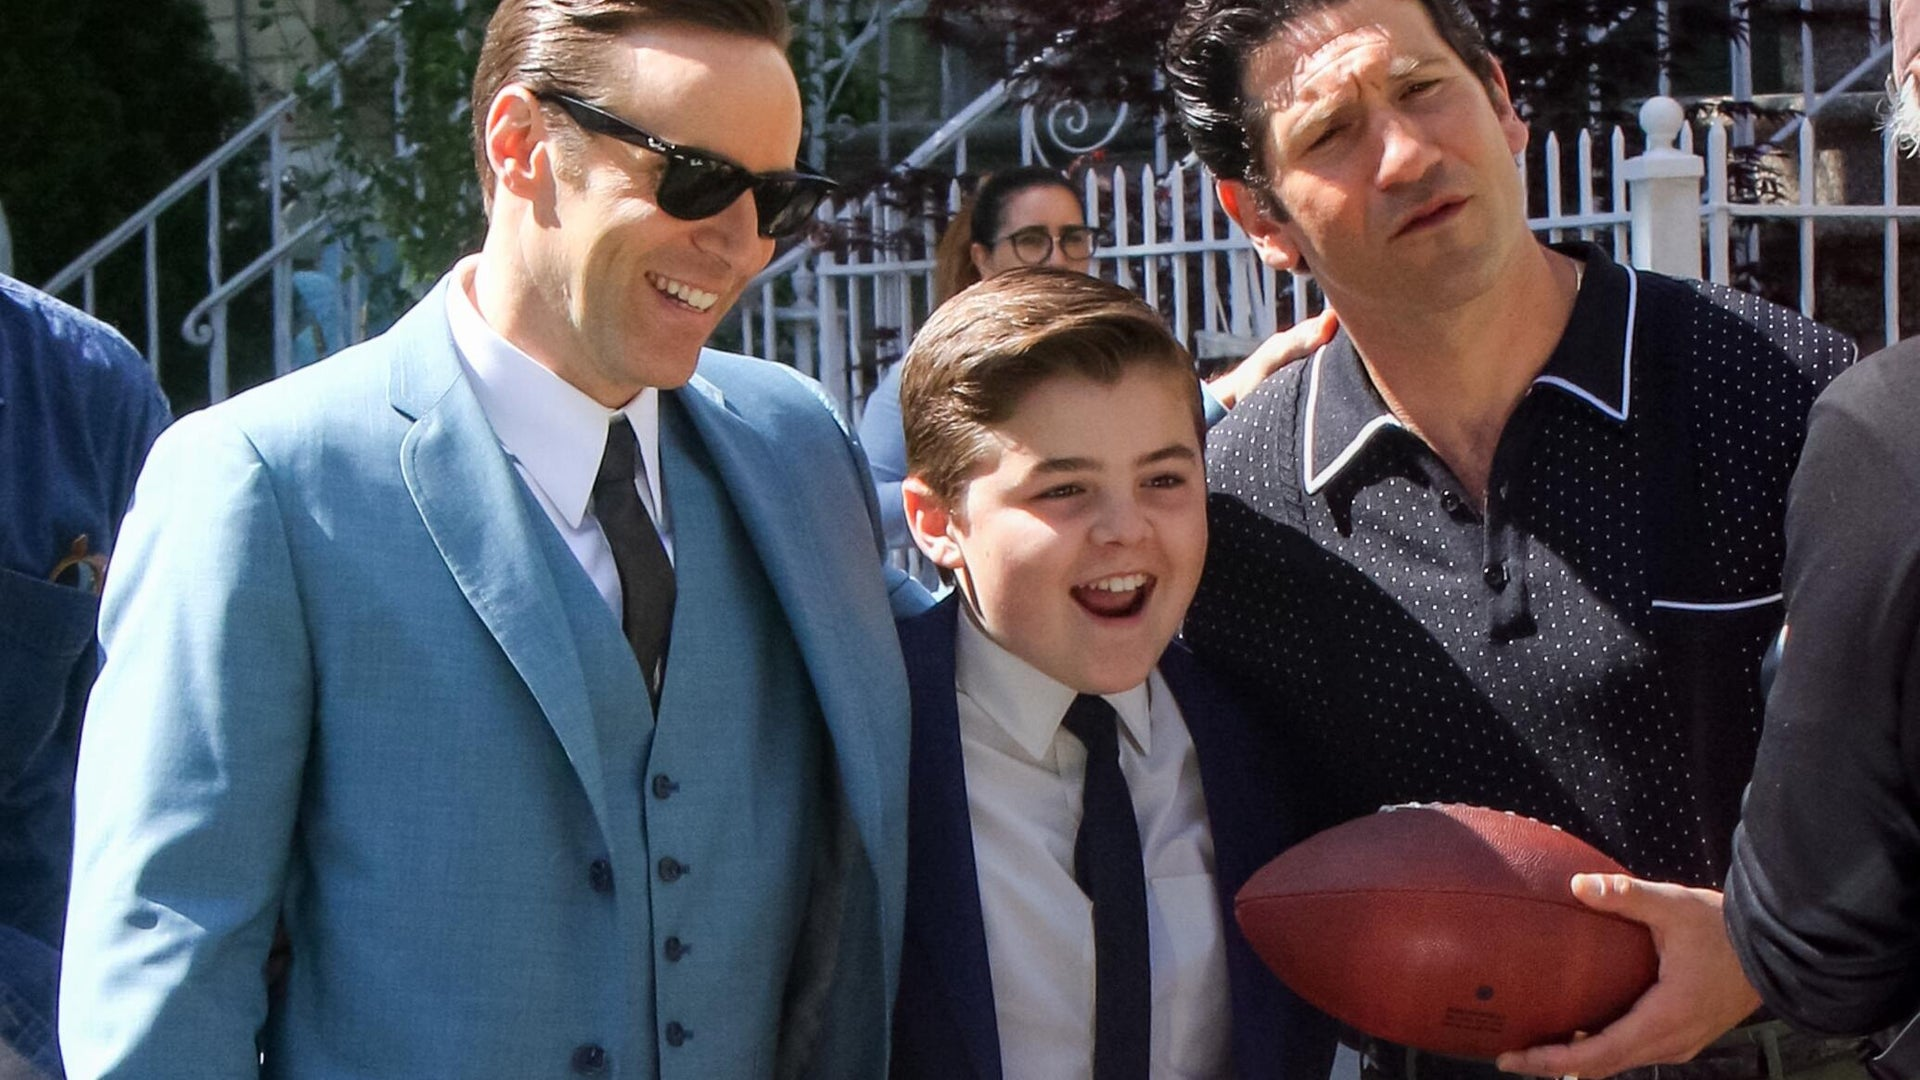 Alessandro Nivola, William Ludwig, and Jon Bernthal on The Many Saints of Newark set in New York City on May 21, 2019.